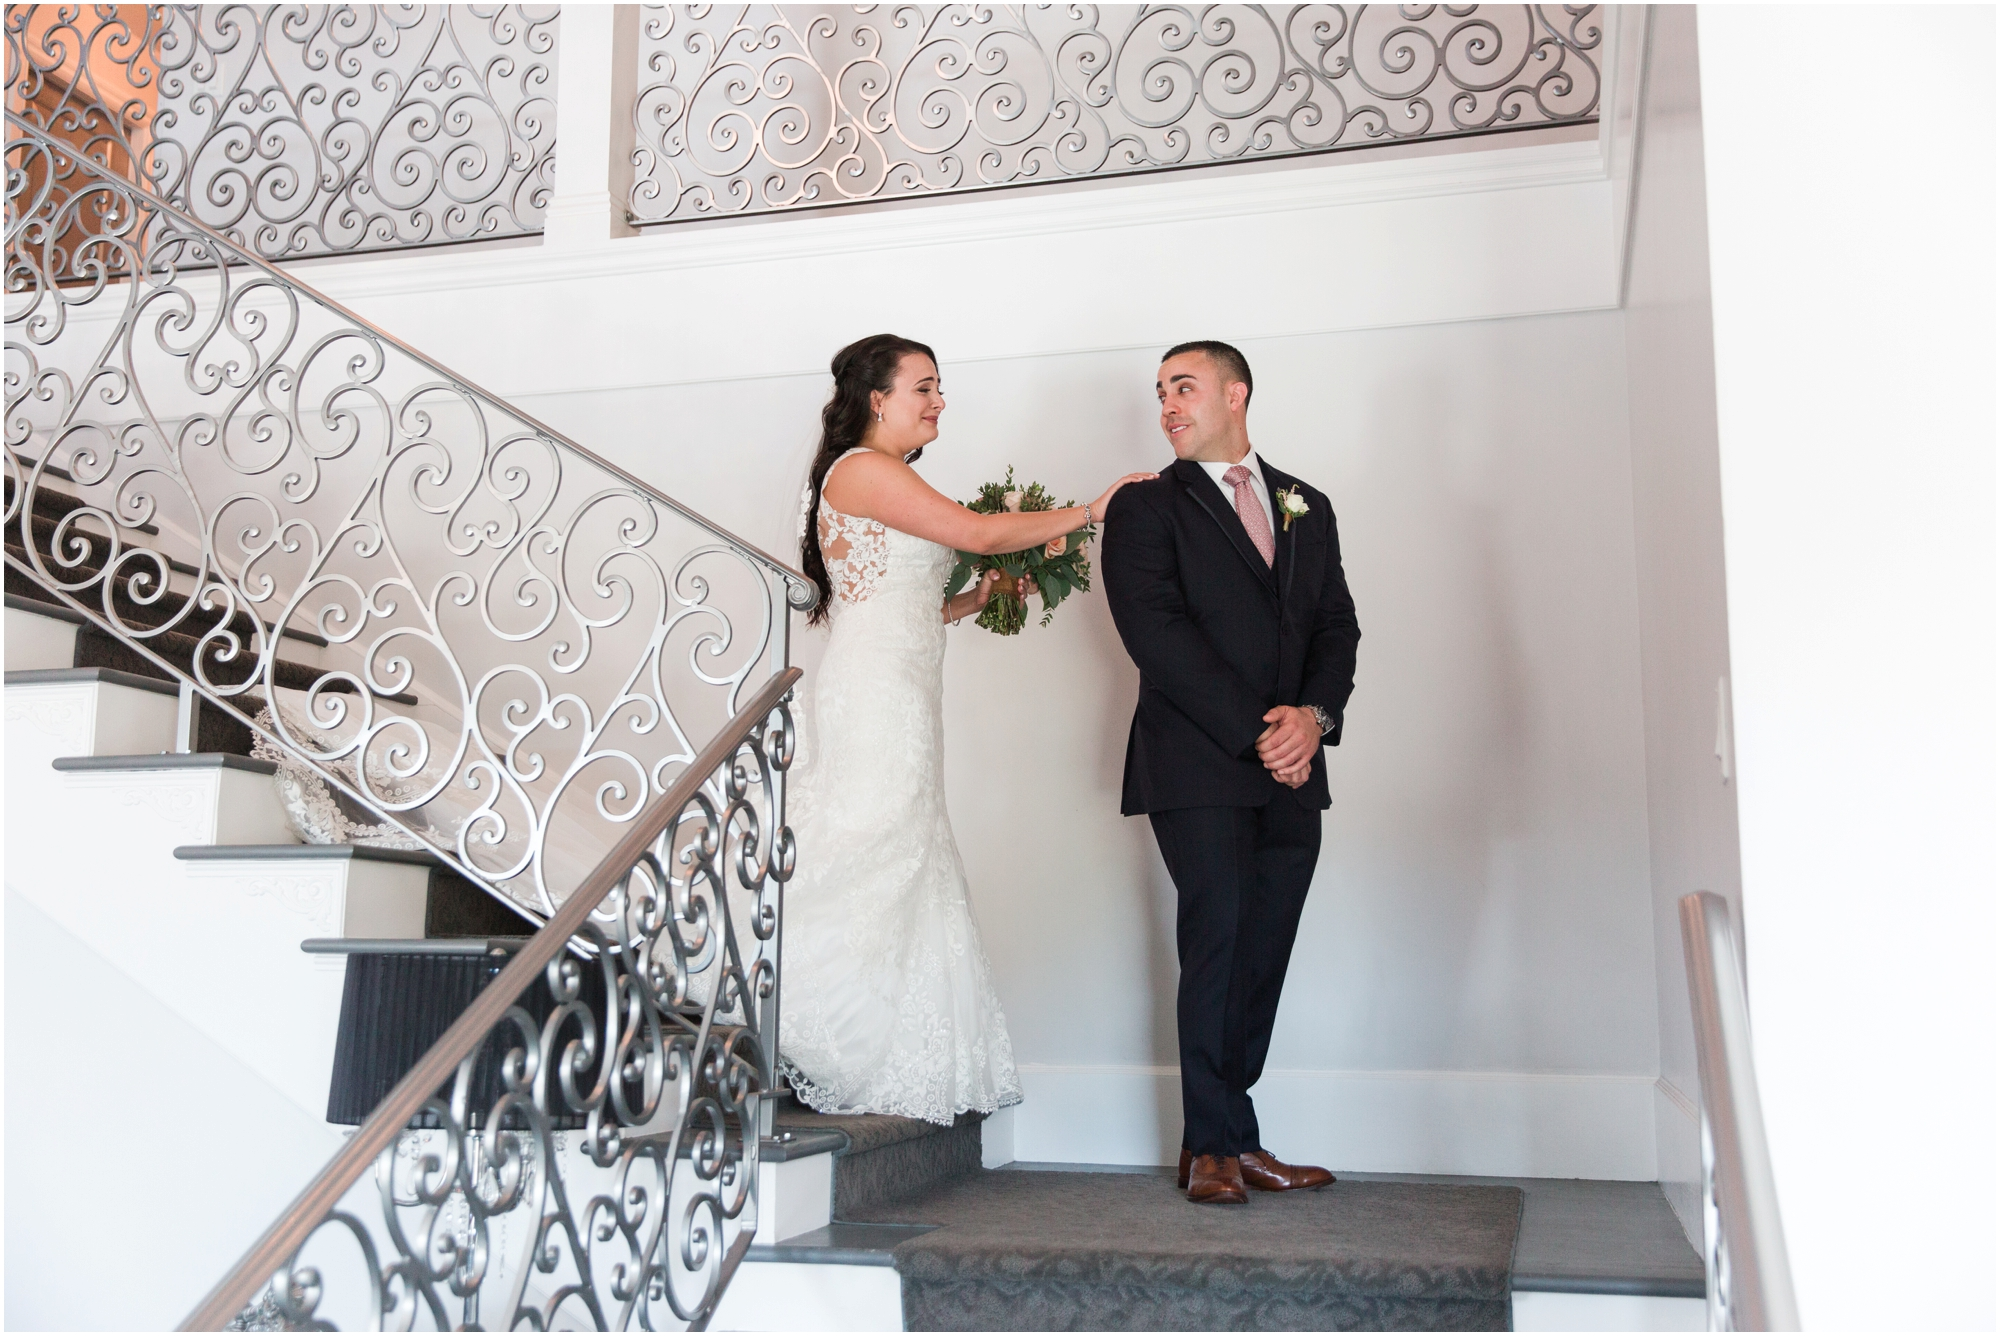 Willow Heights Mansion wedding by Briana Calderon Photography based in the Greater Seattle & Tacoma, WA_0830.jpg